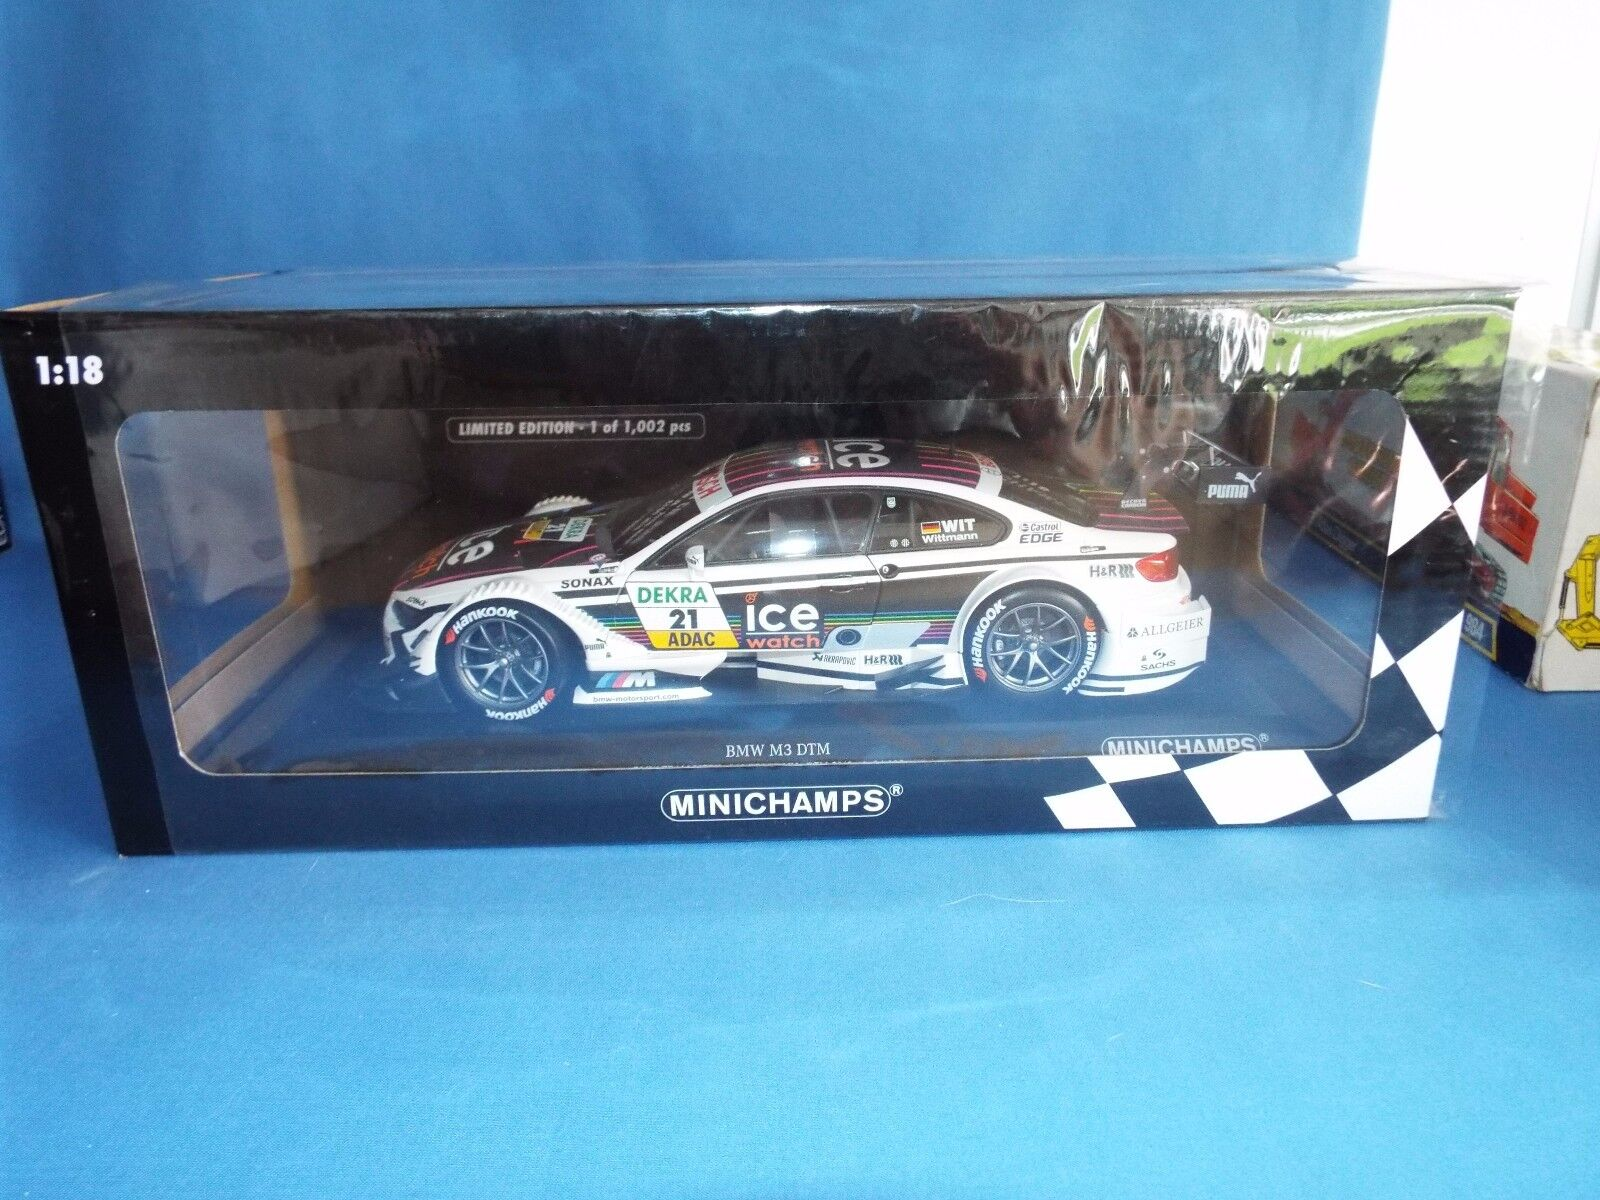 Minichamps No 120877 B M W M3 DTM 2013 1 of 1002 produced